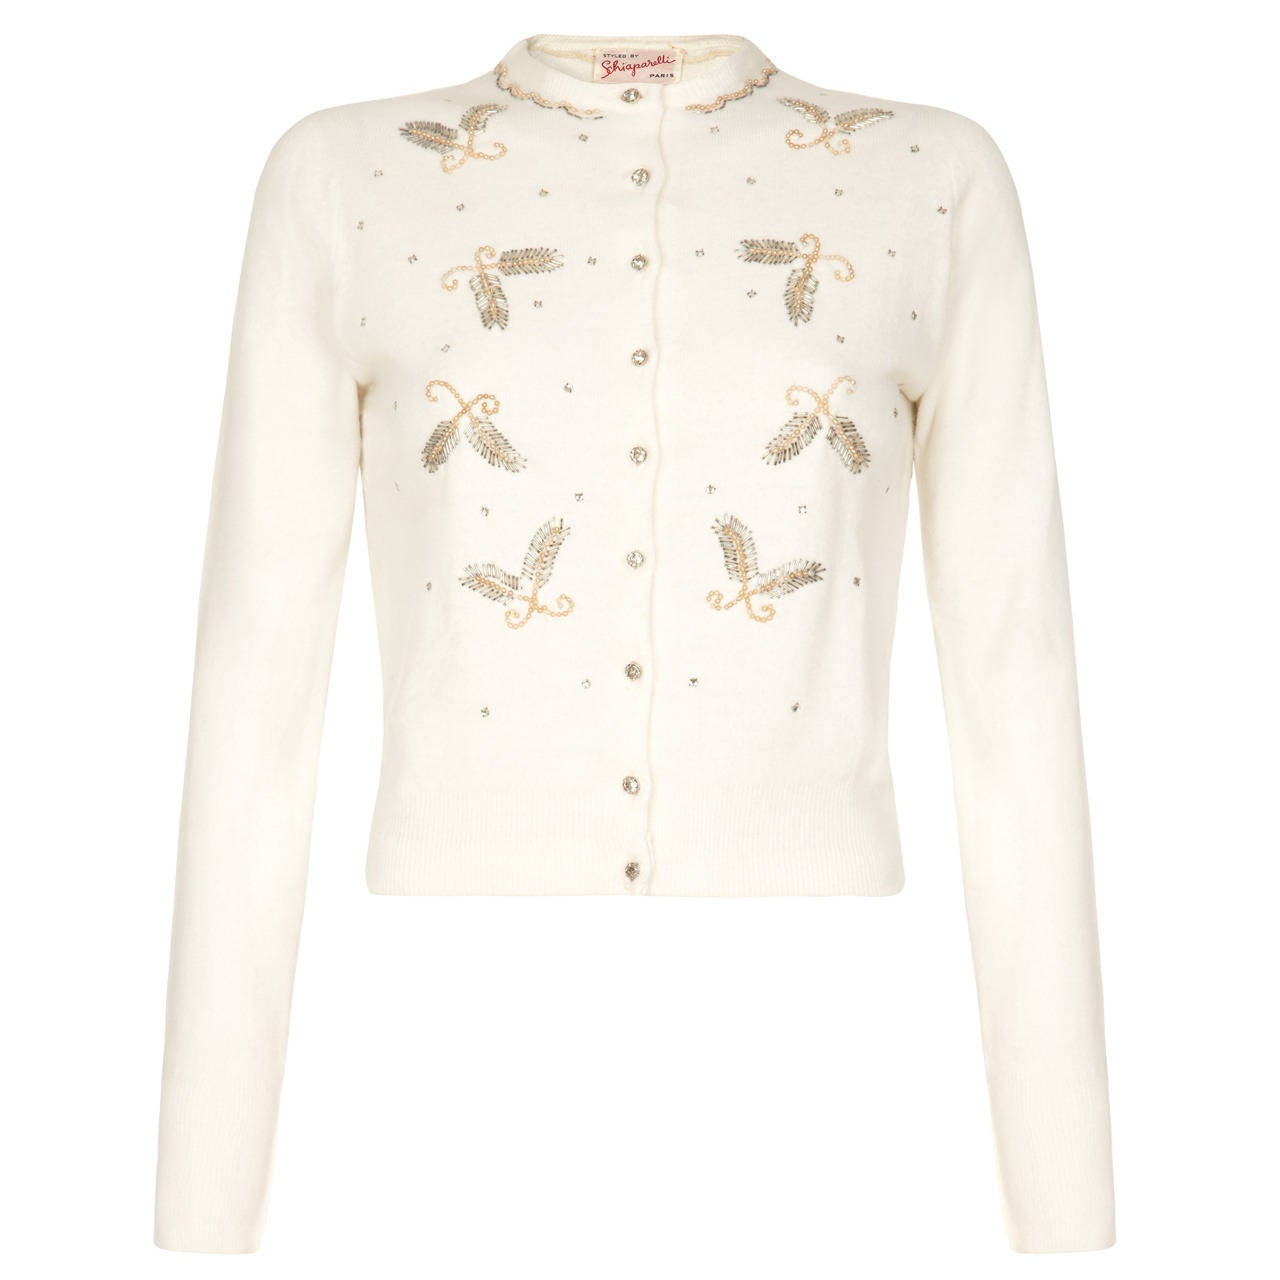 1950s Schiaparelli White Beaded Cardigan at 1stdibs